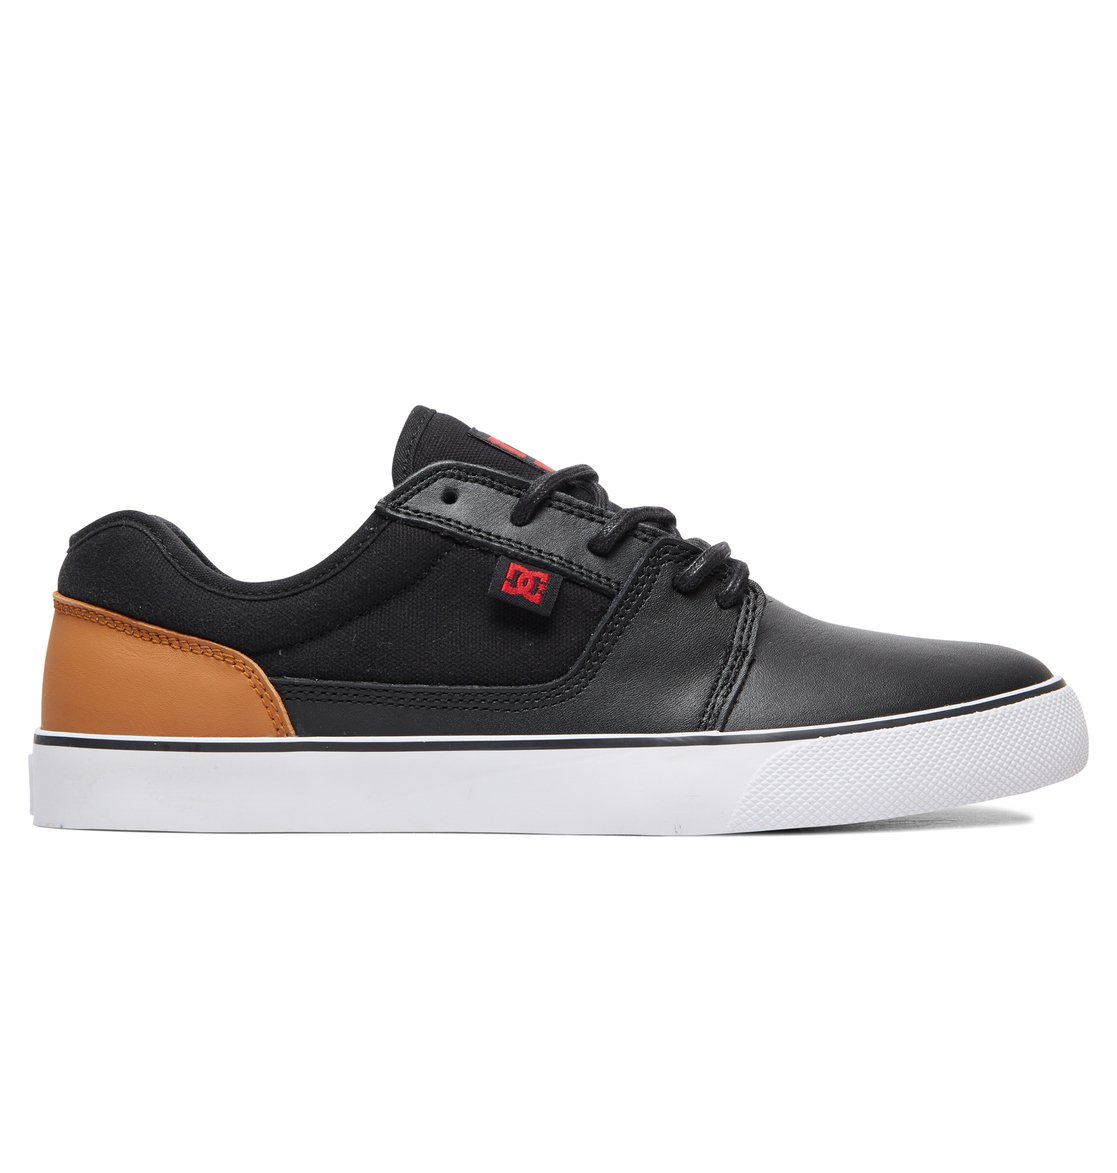 Chaussures DC Shoes Tonik noires Fashion homme